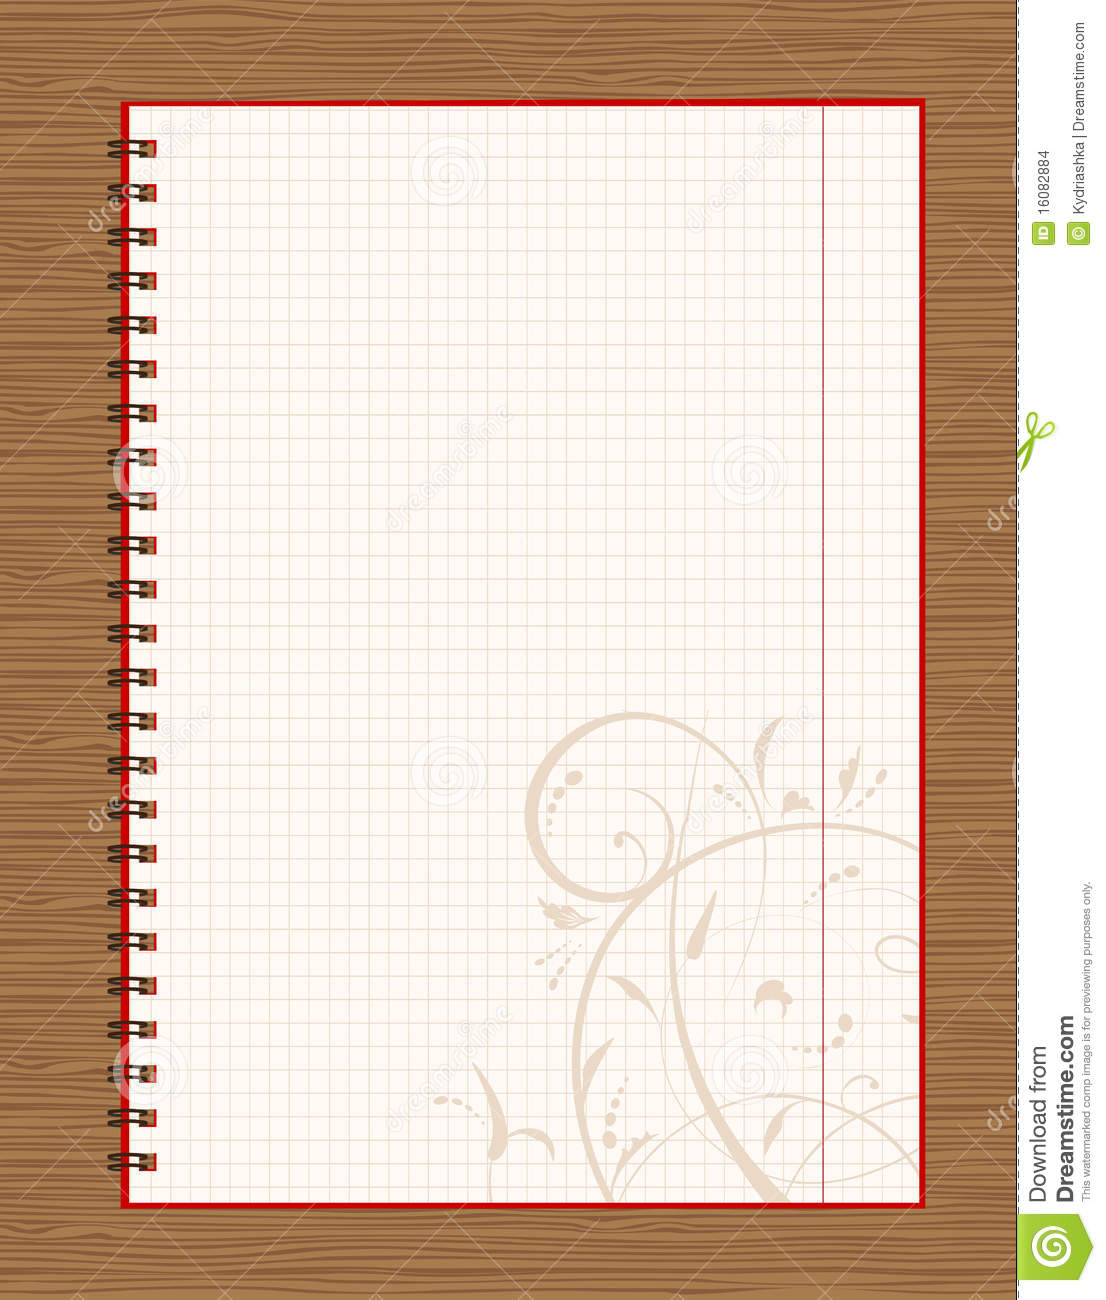 Notebook open page design on wooden background stock for Page decoration ideas